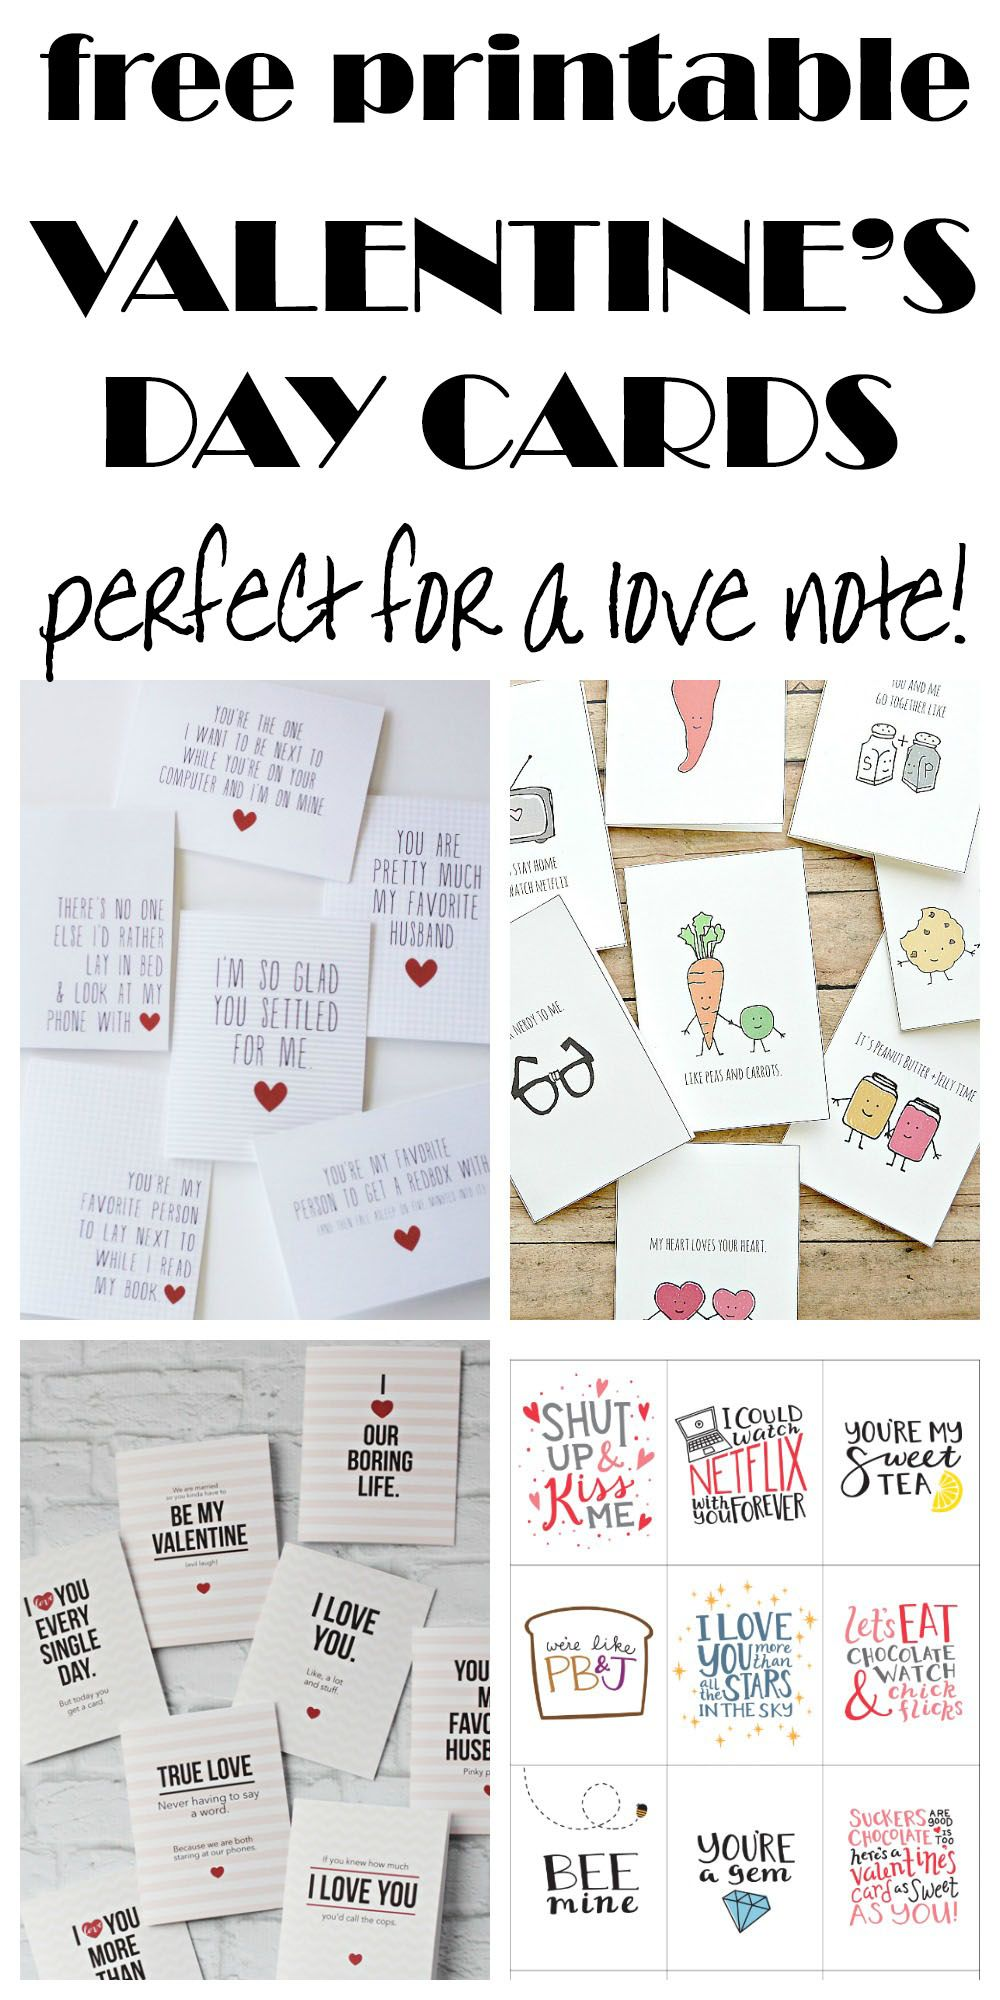 Funny and cute free printable cards perfect for a love note